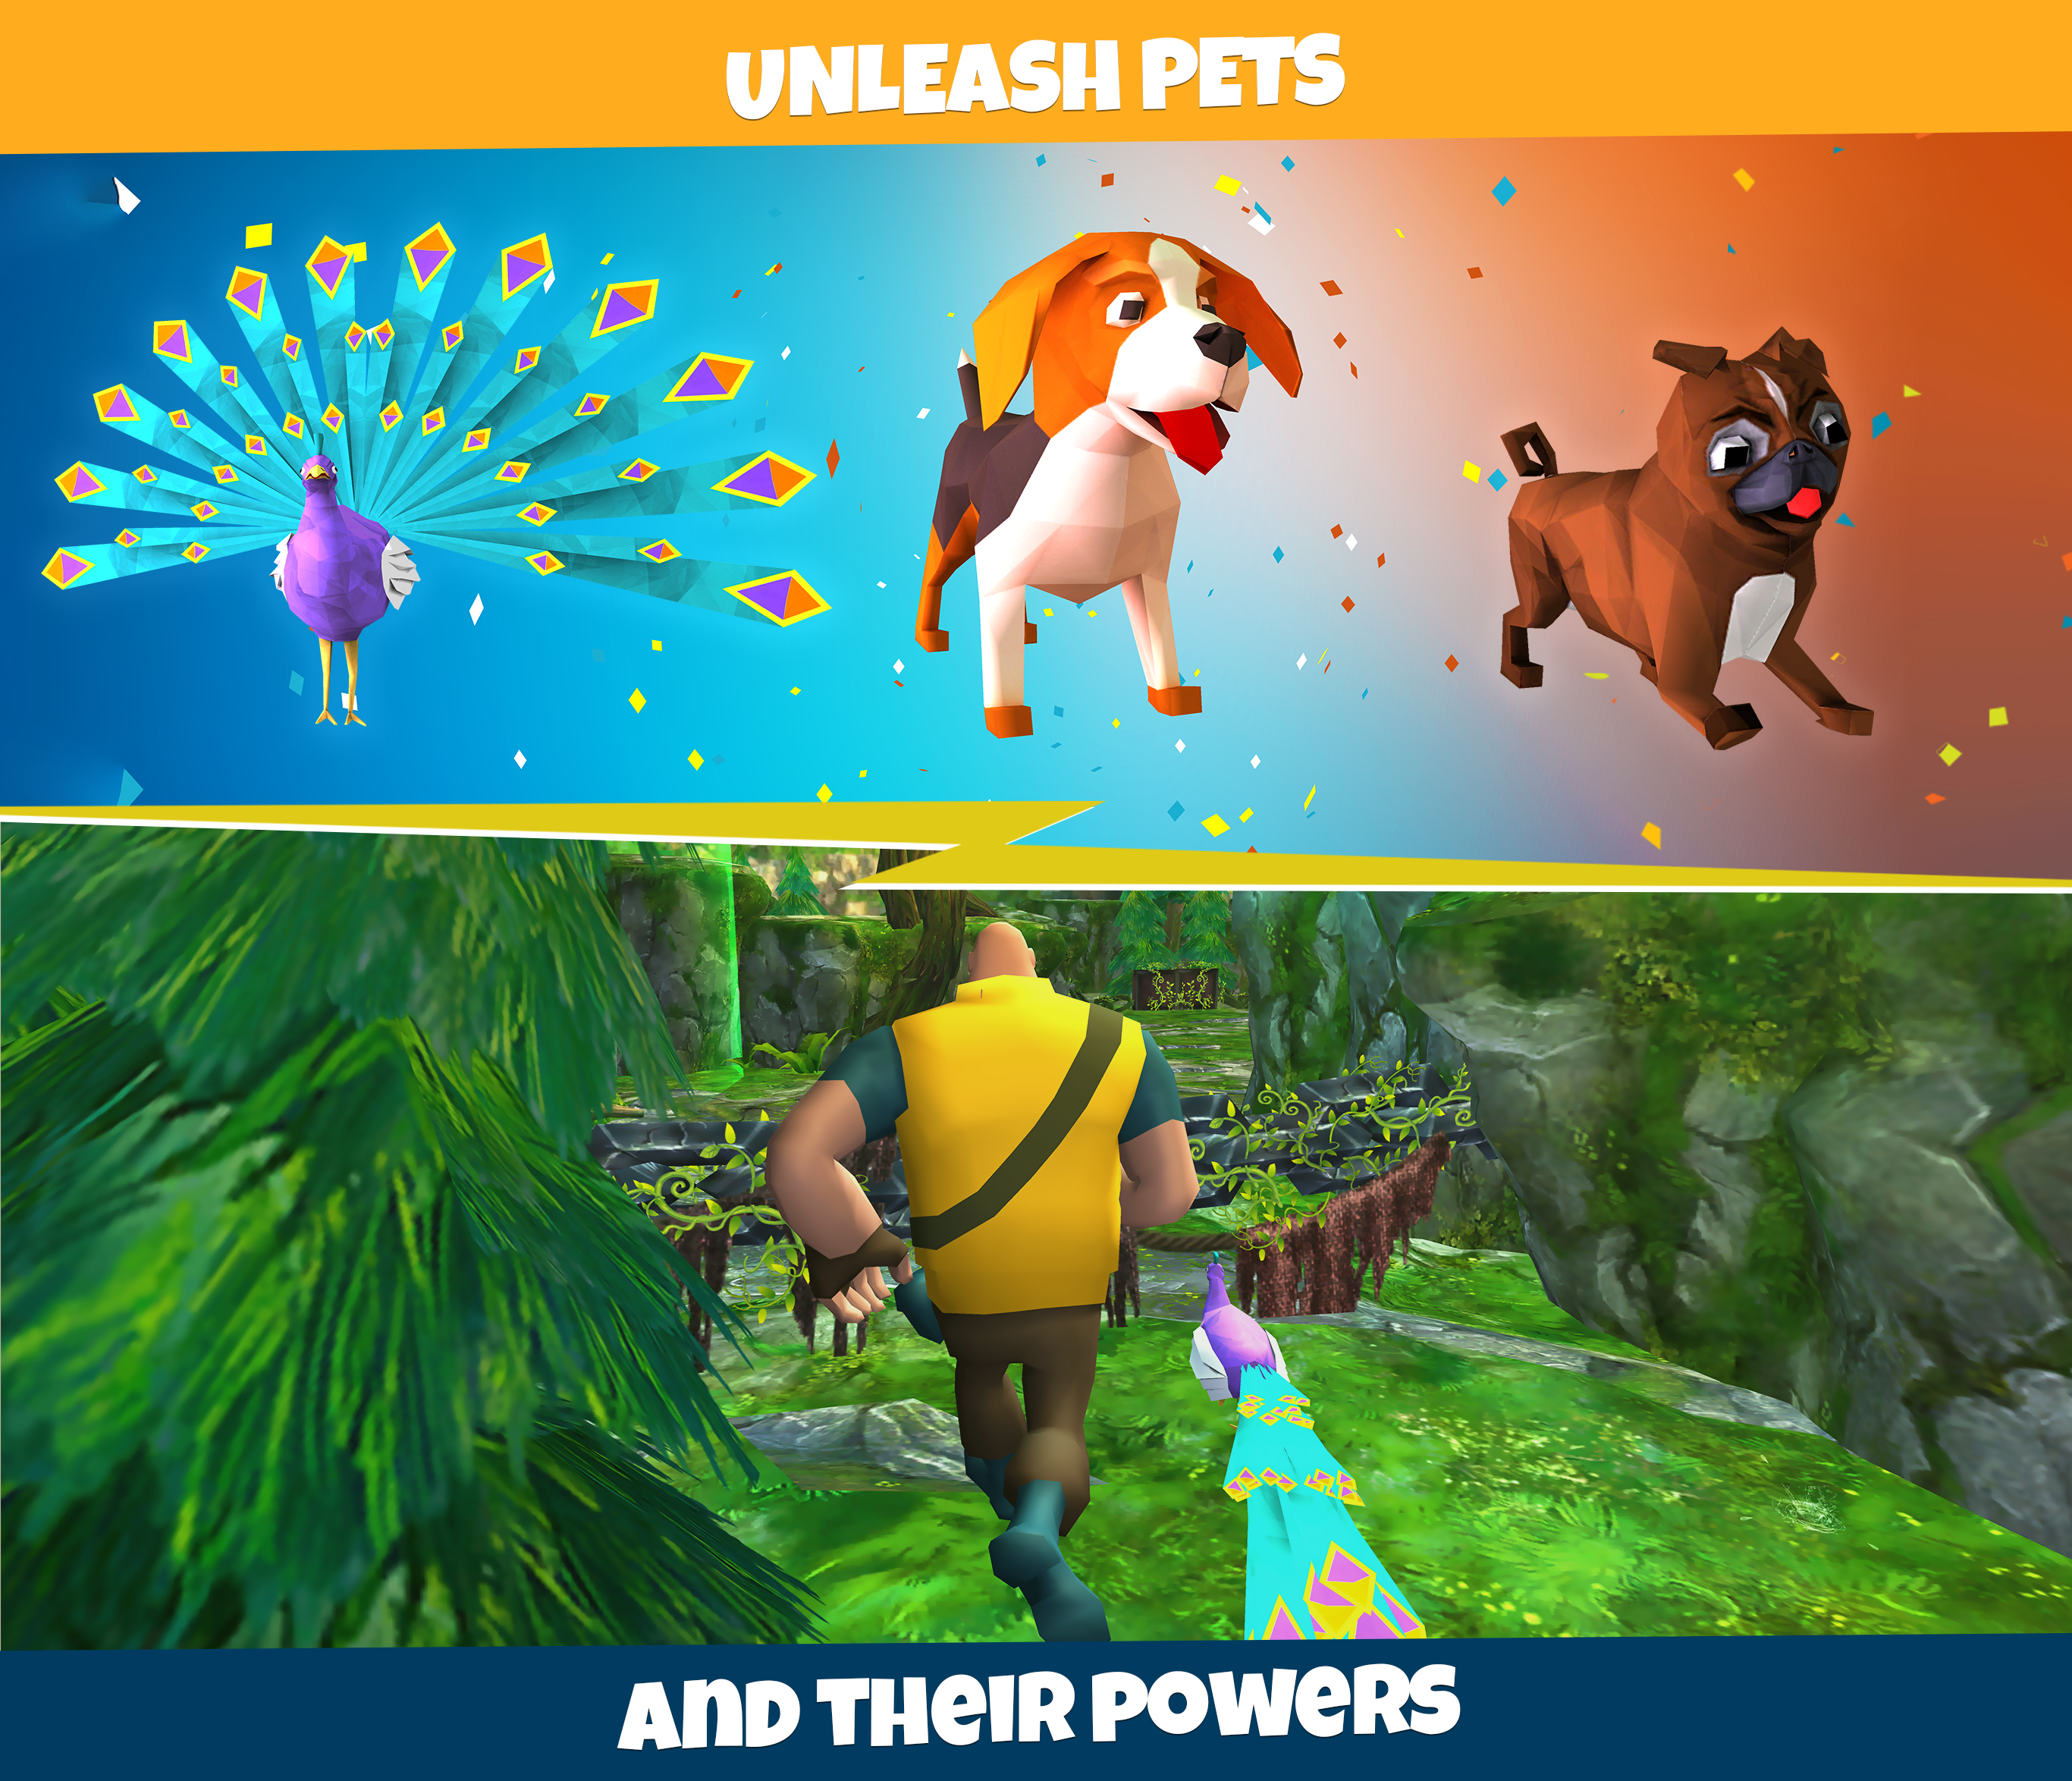 MazeRun: Pets and parkour - Unity Connect